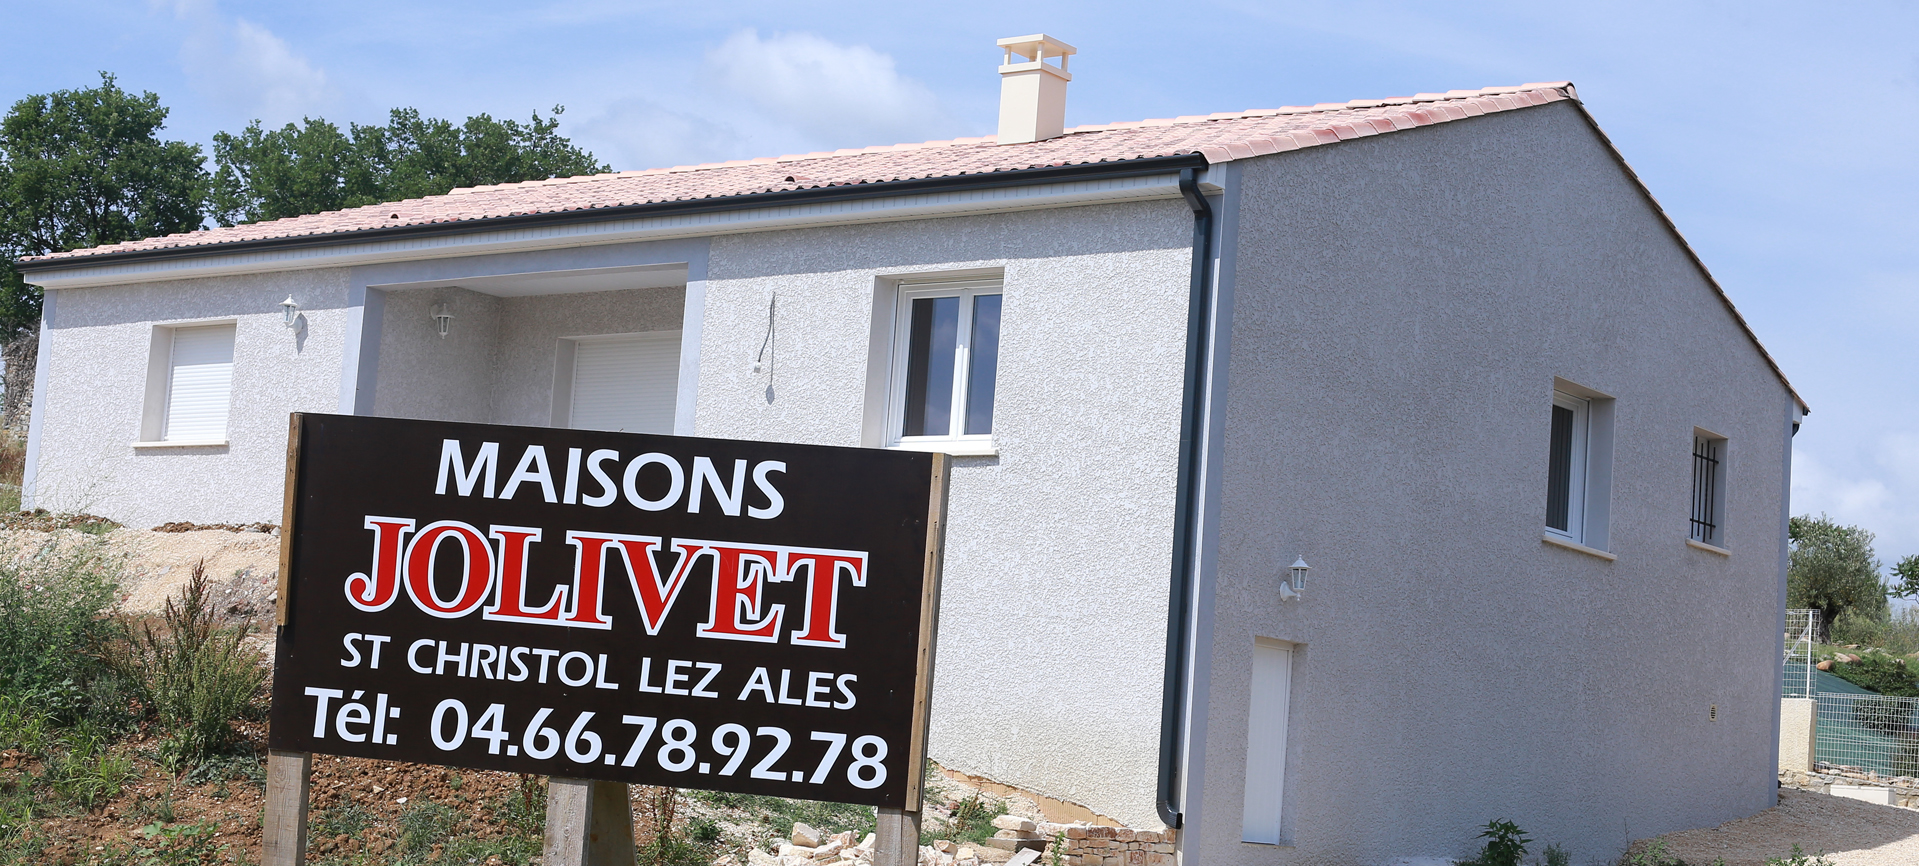 Mat riaux de construction maisons jolivet al s gard for Liste materiaux construction maison